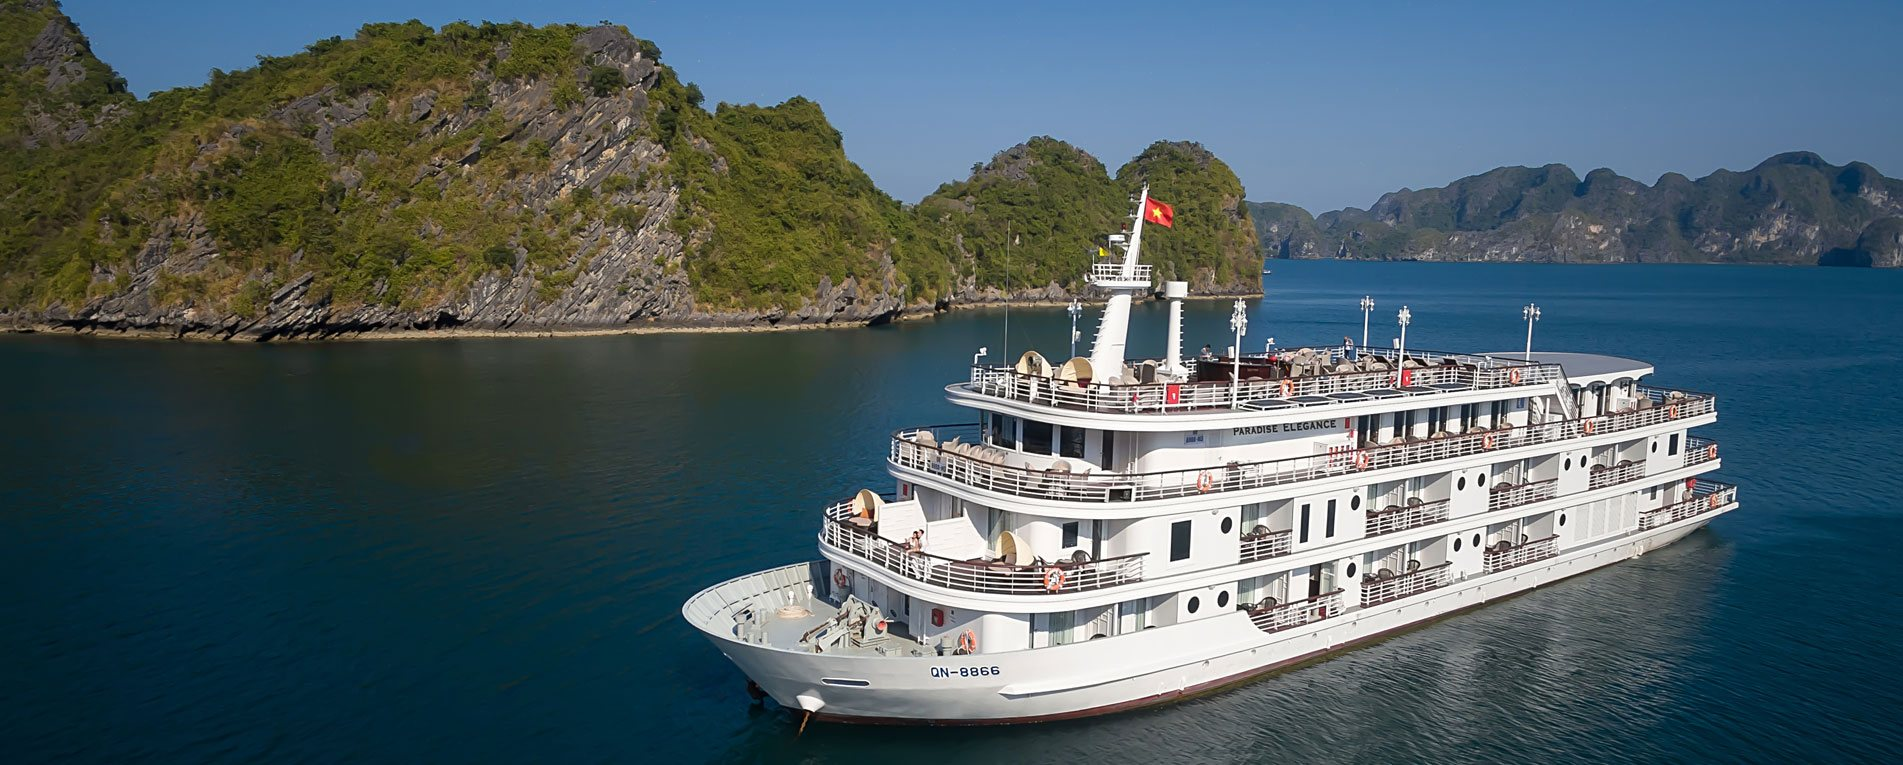 Halong Bay cruise